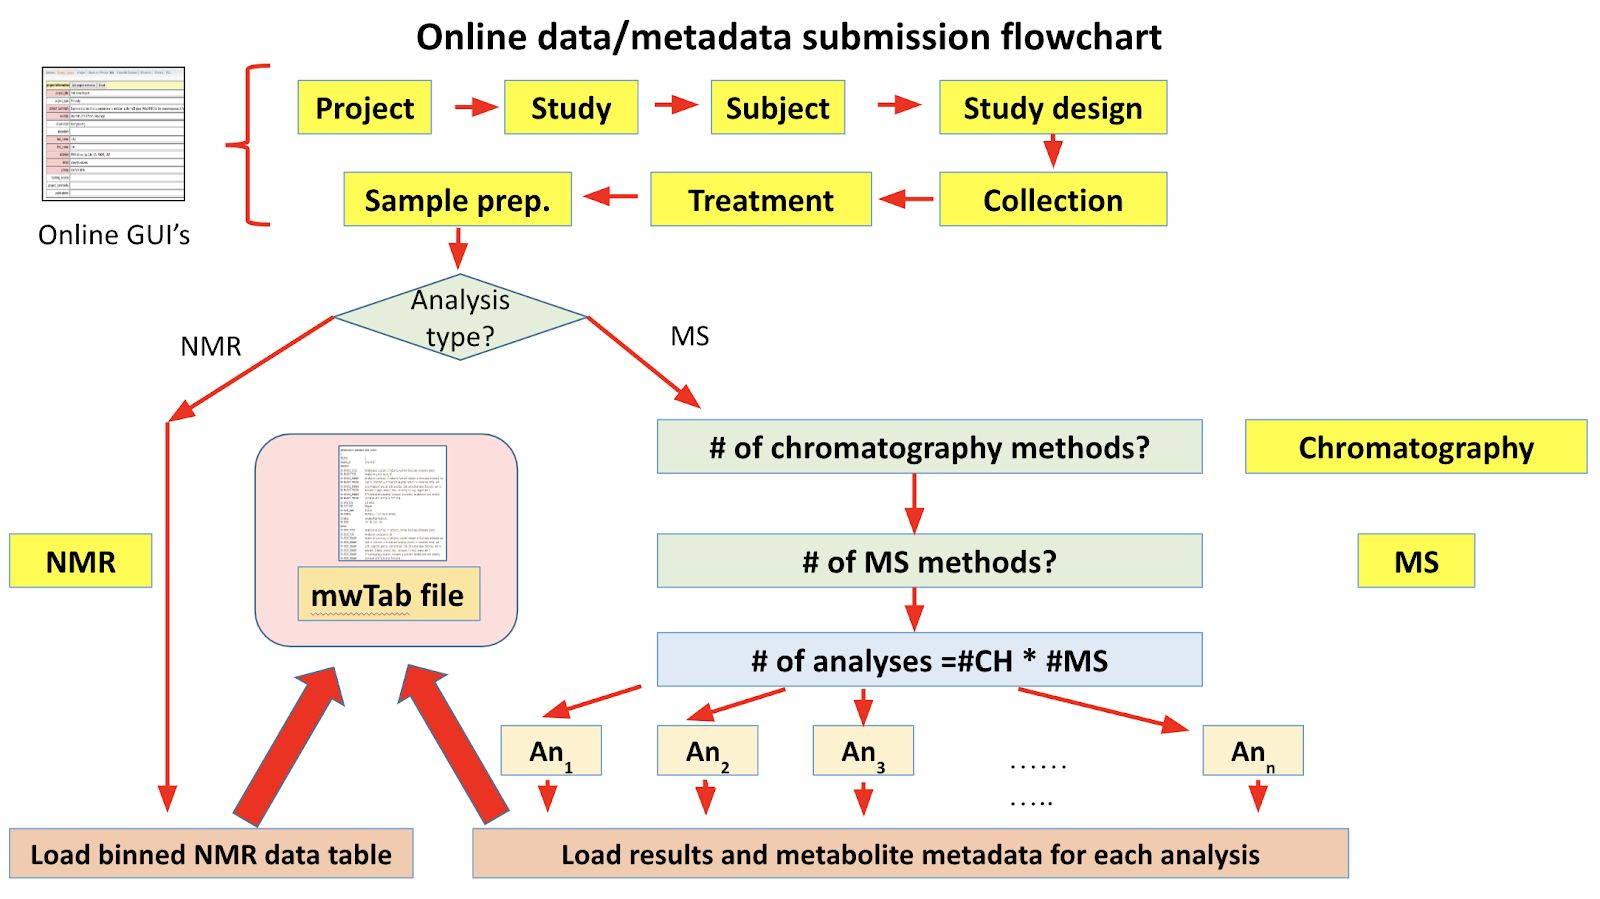 online data metadata submission flowchart